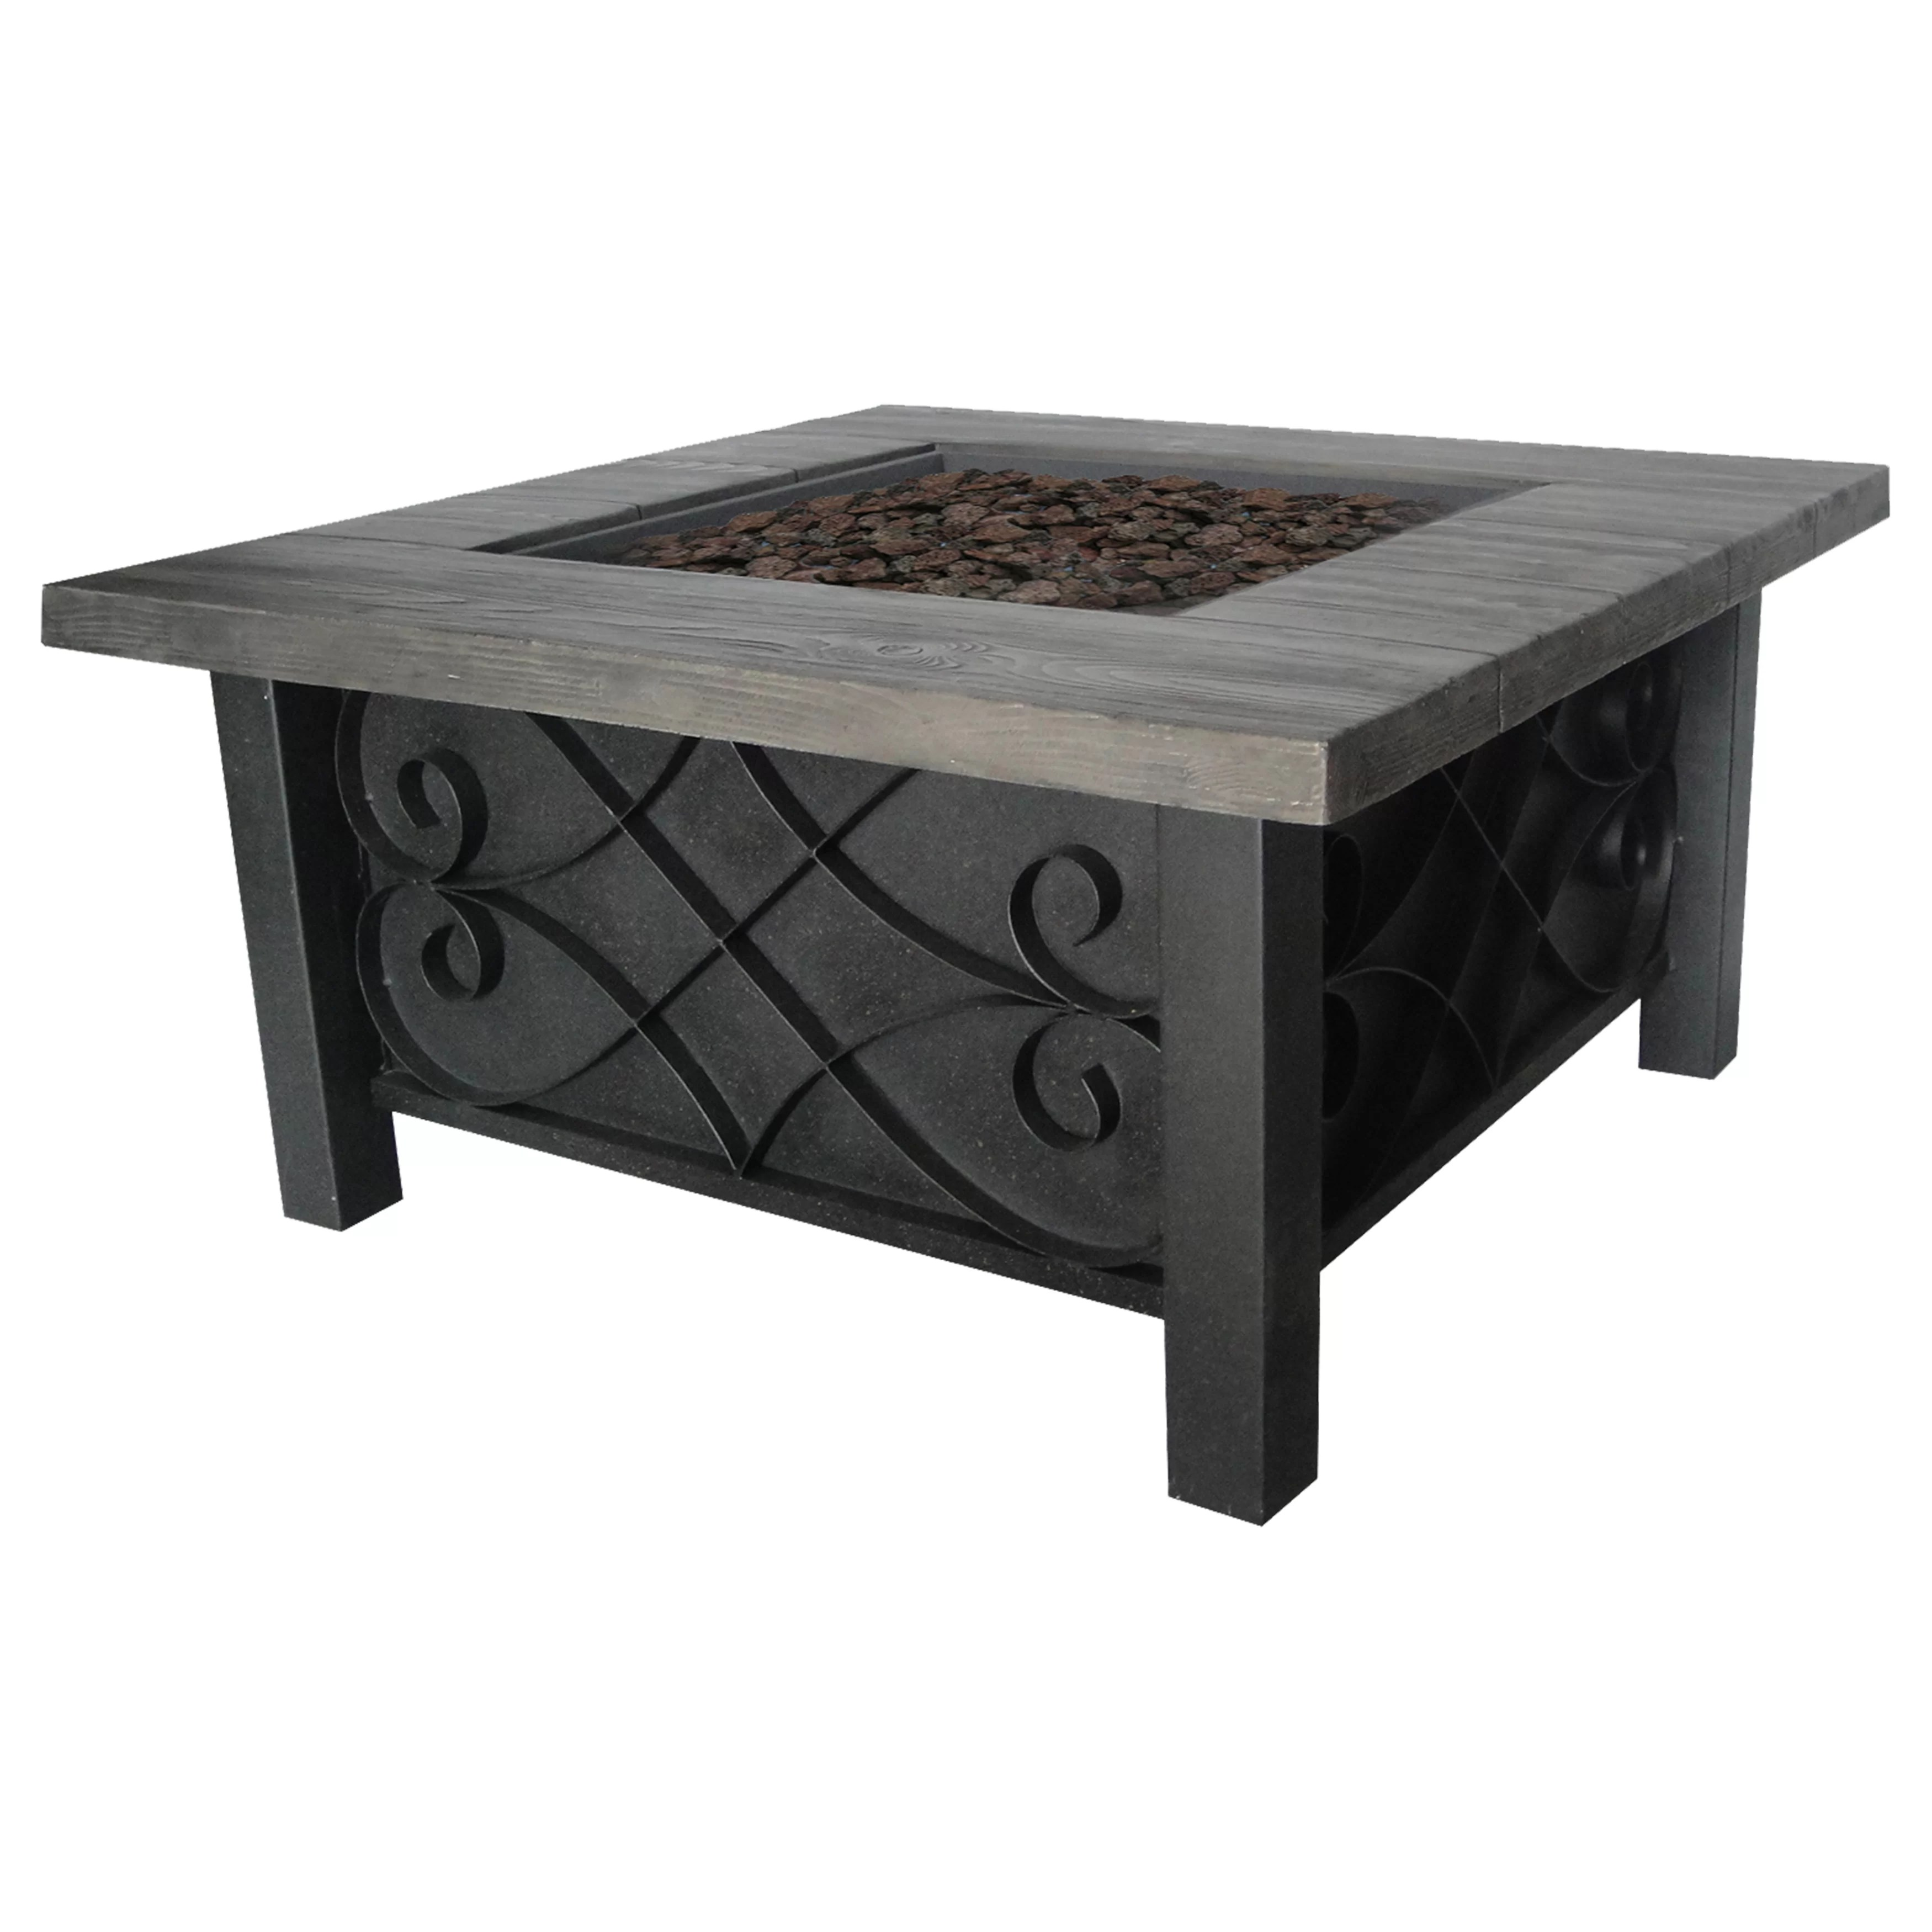 Fireplace Tables Outdoor Bond Marbella Steel Gas Outdoor Table Top Fireplace